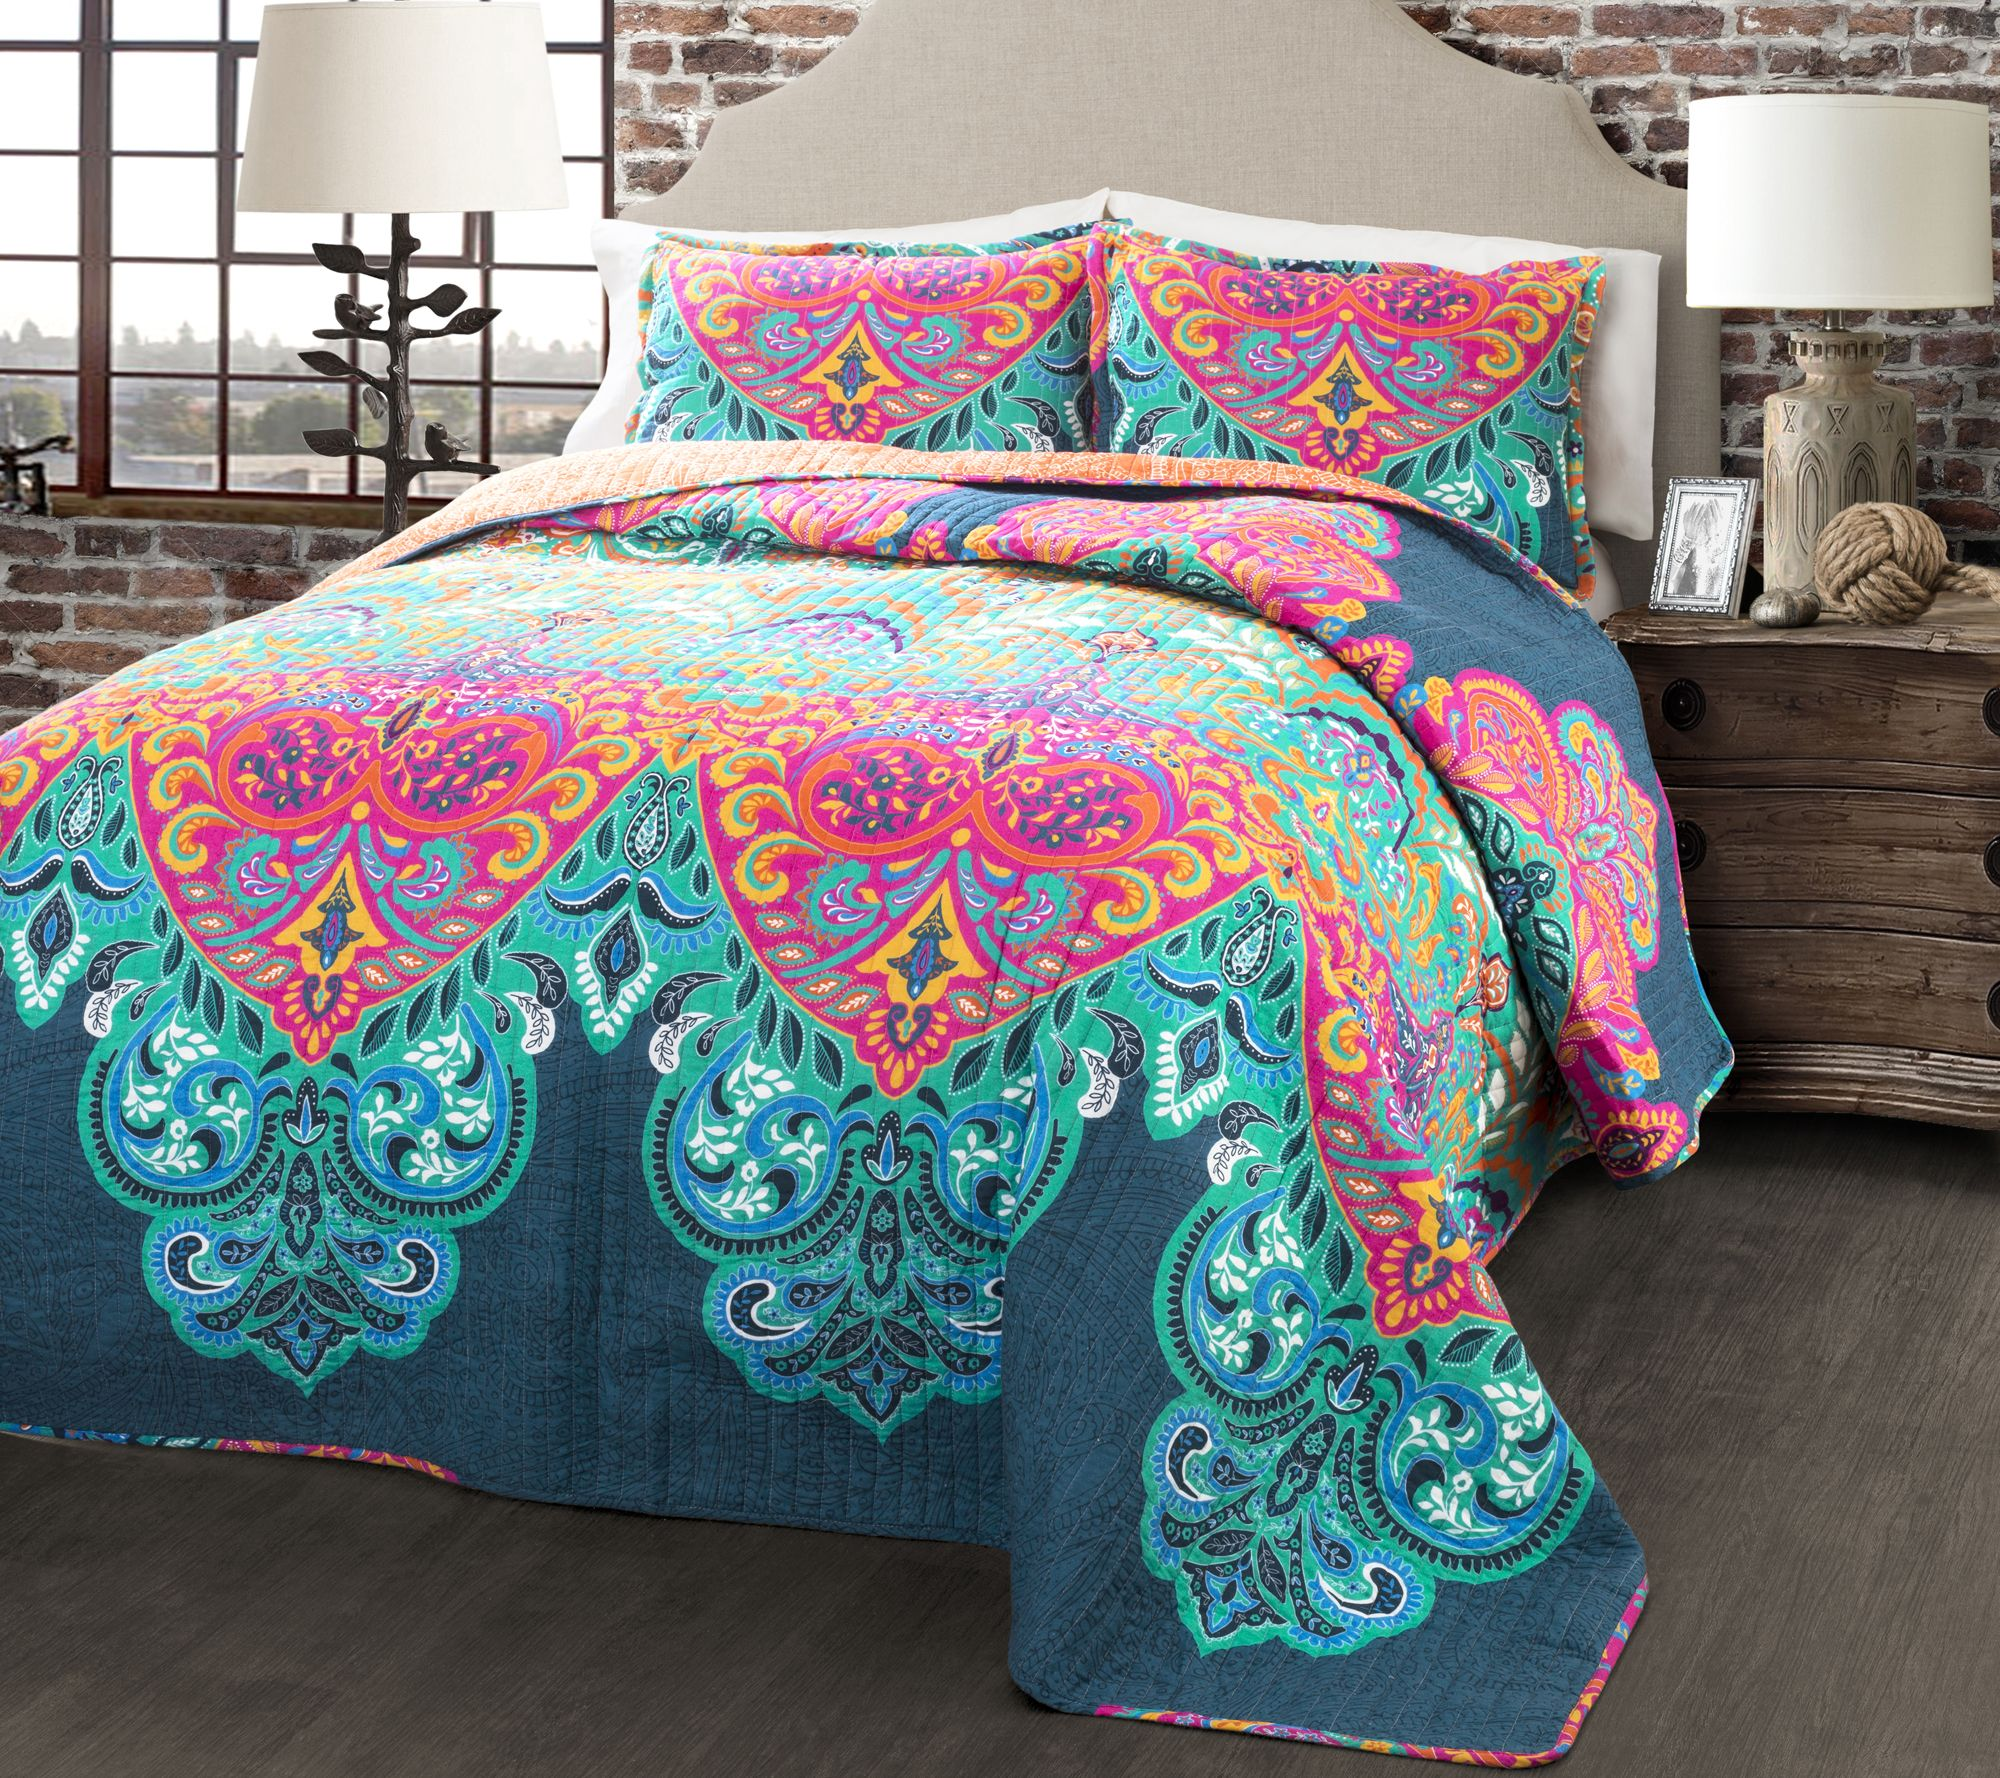 bedding bohemian duvet and comforter sets ink rags shot mandala at am screen products sun